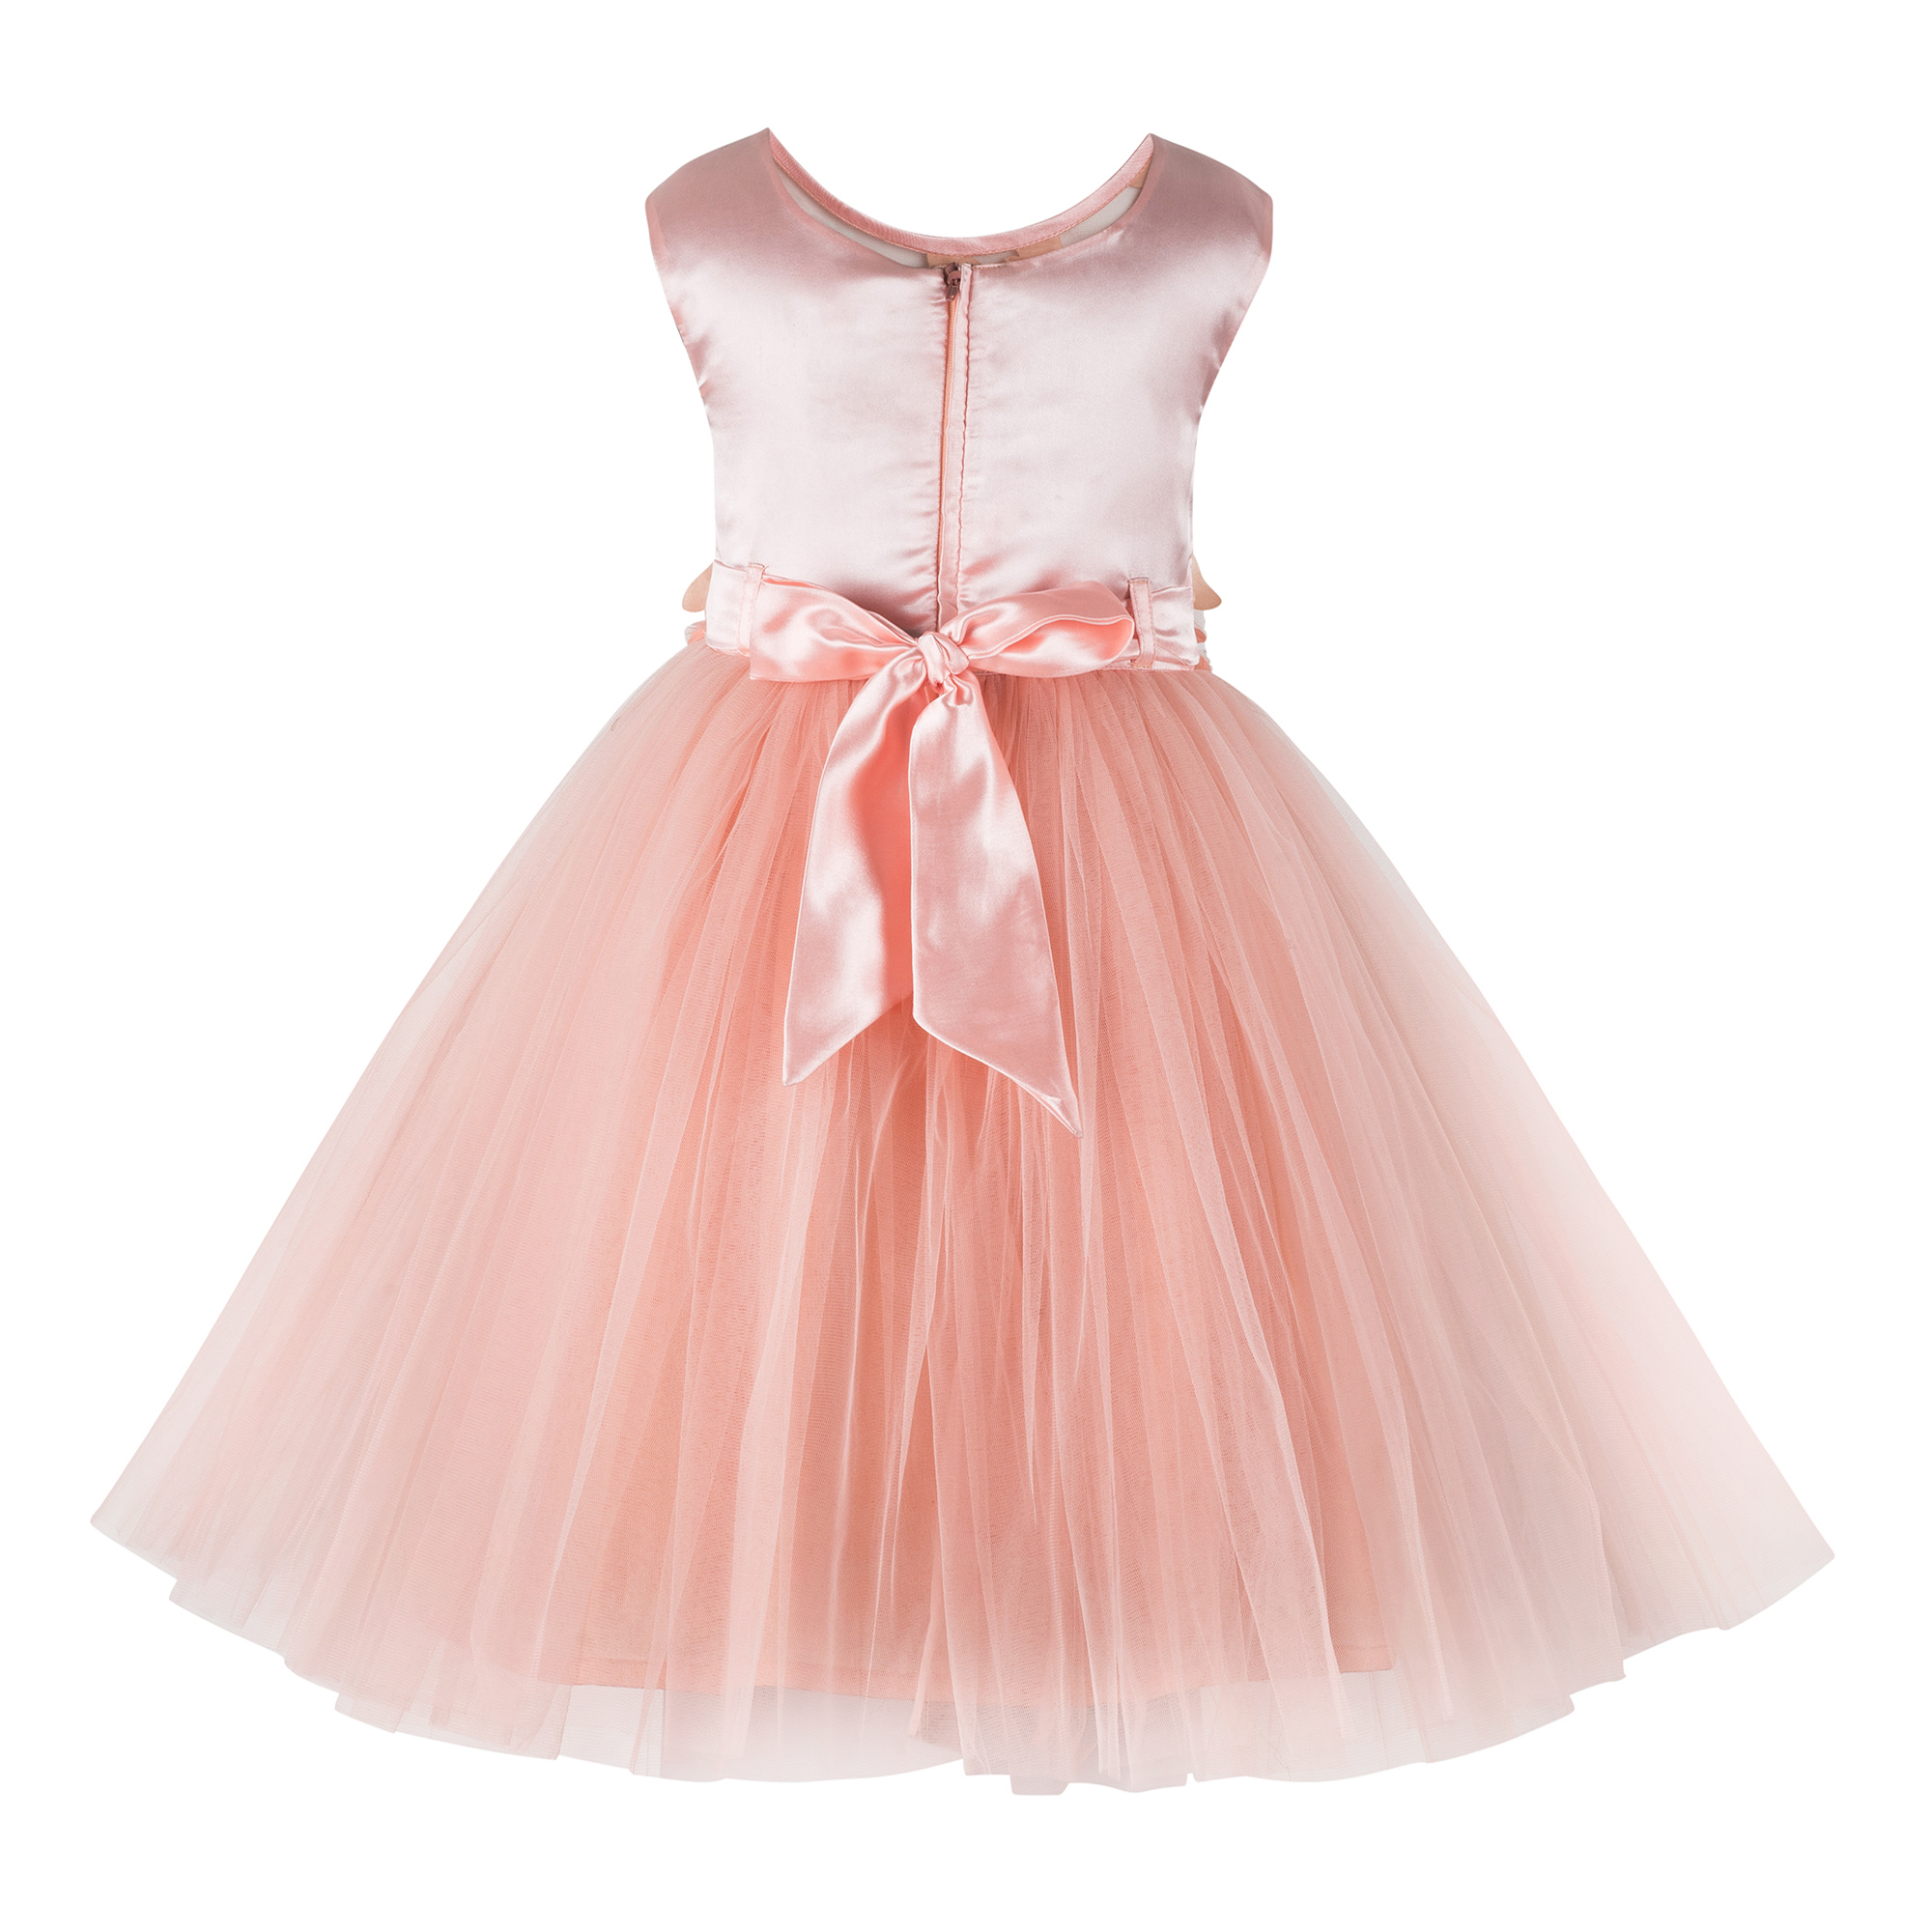 Butterfly Applique Peach  Frock.